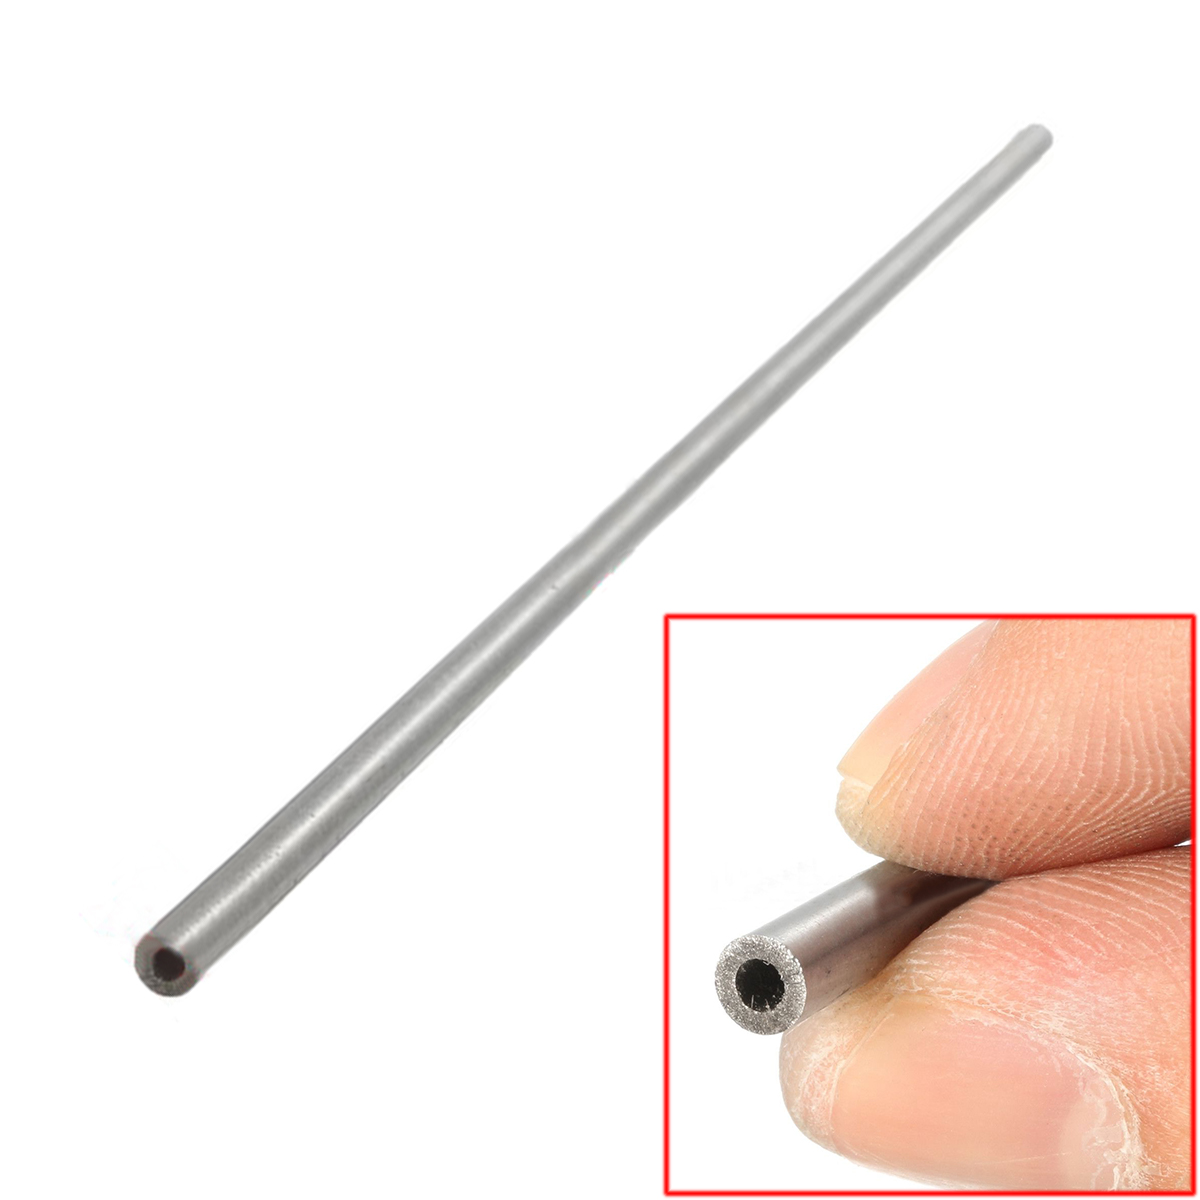 1pc New Stainless Steel Seamless Tube Silver Capillary Round Tube OD 4mm 2mm ID Length 250mm Mayitr 5pcs 304 stainless steel capillary tube 3mm od 2mm id 250mm length silver for hardware accessories